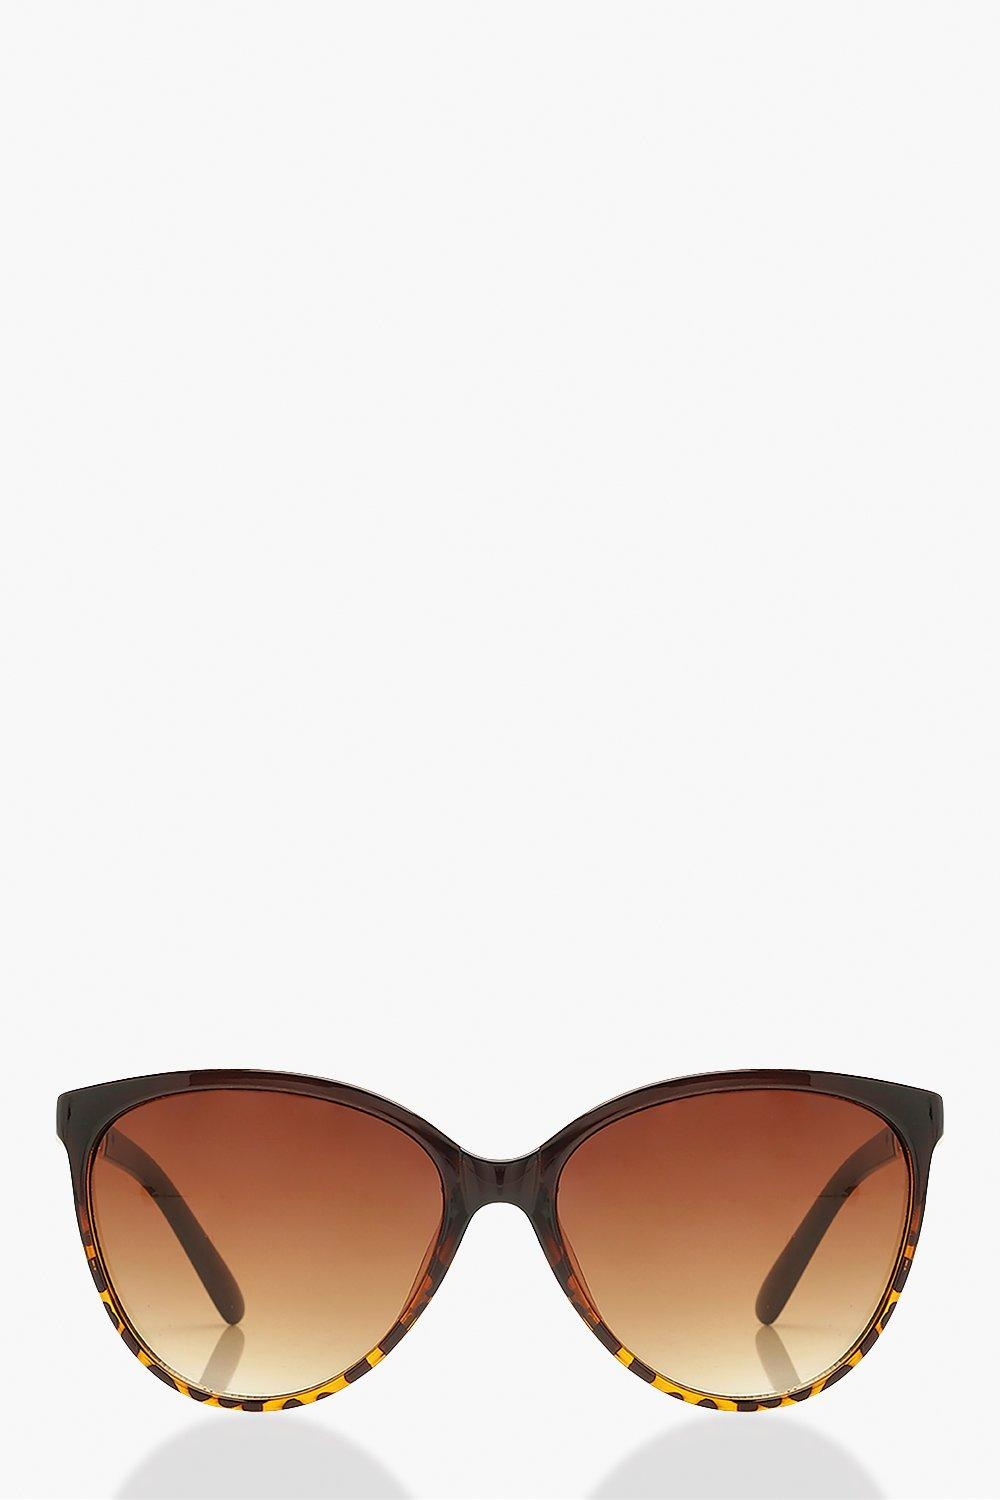 boohoo Womens Chain Detail Sunglasses - Brown - One Size, Brown